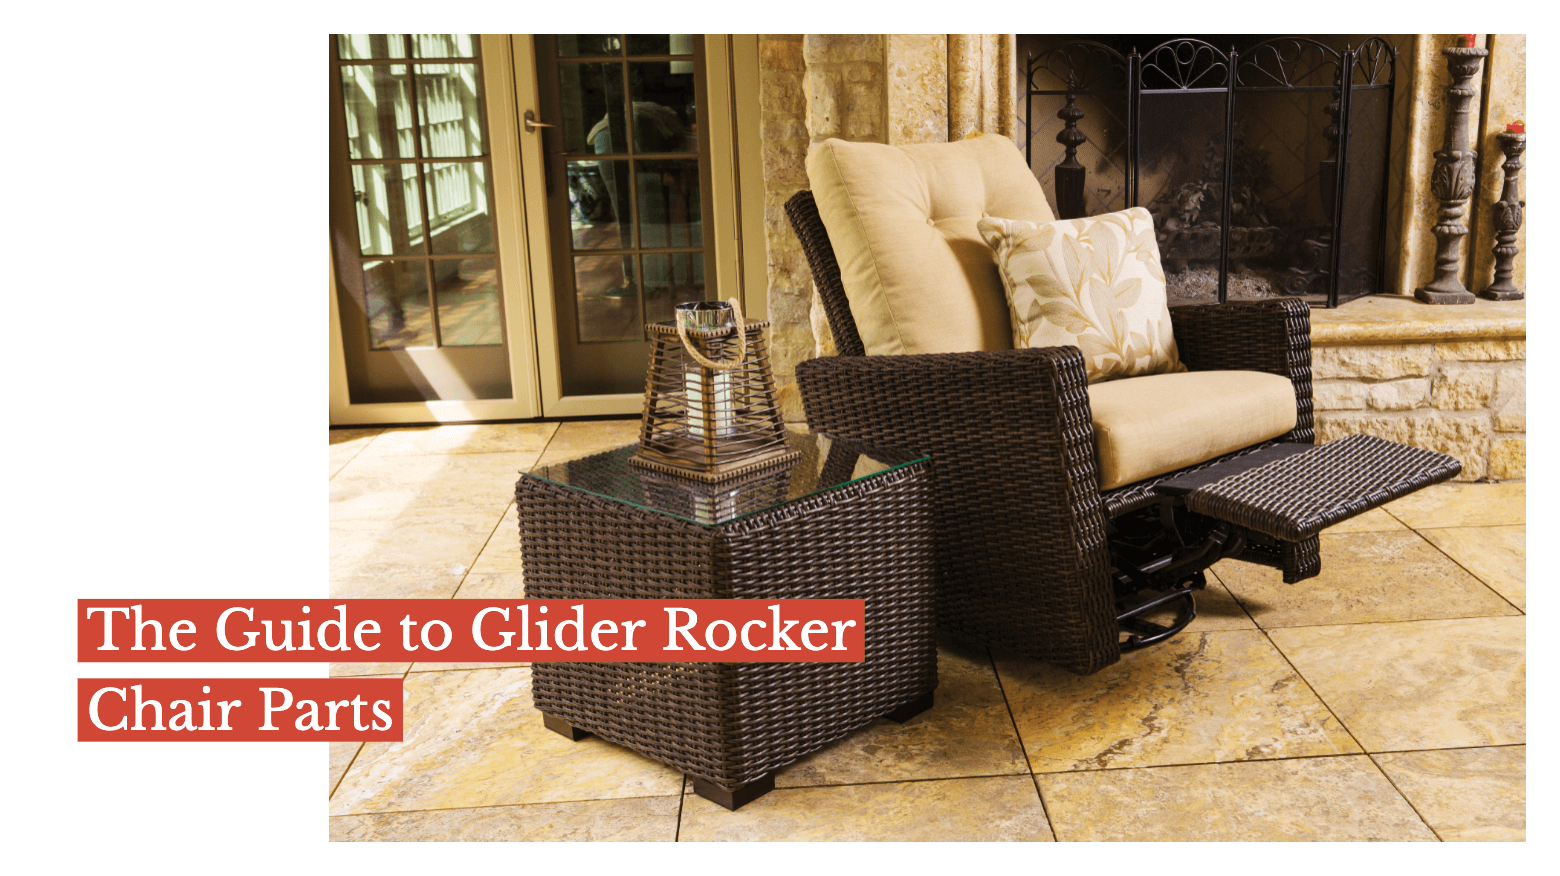 The Guide to Glider Rocker Chair Parts